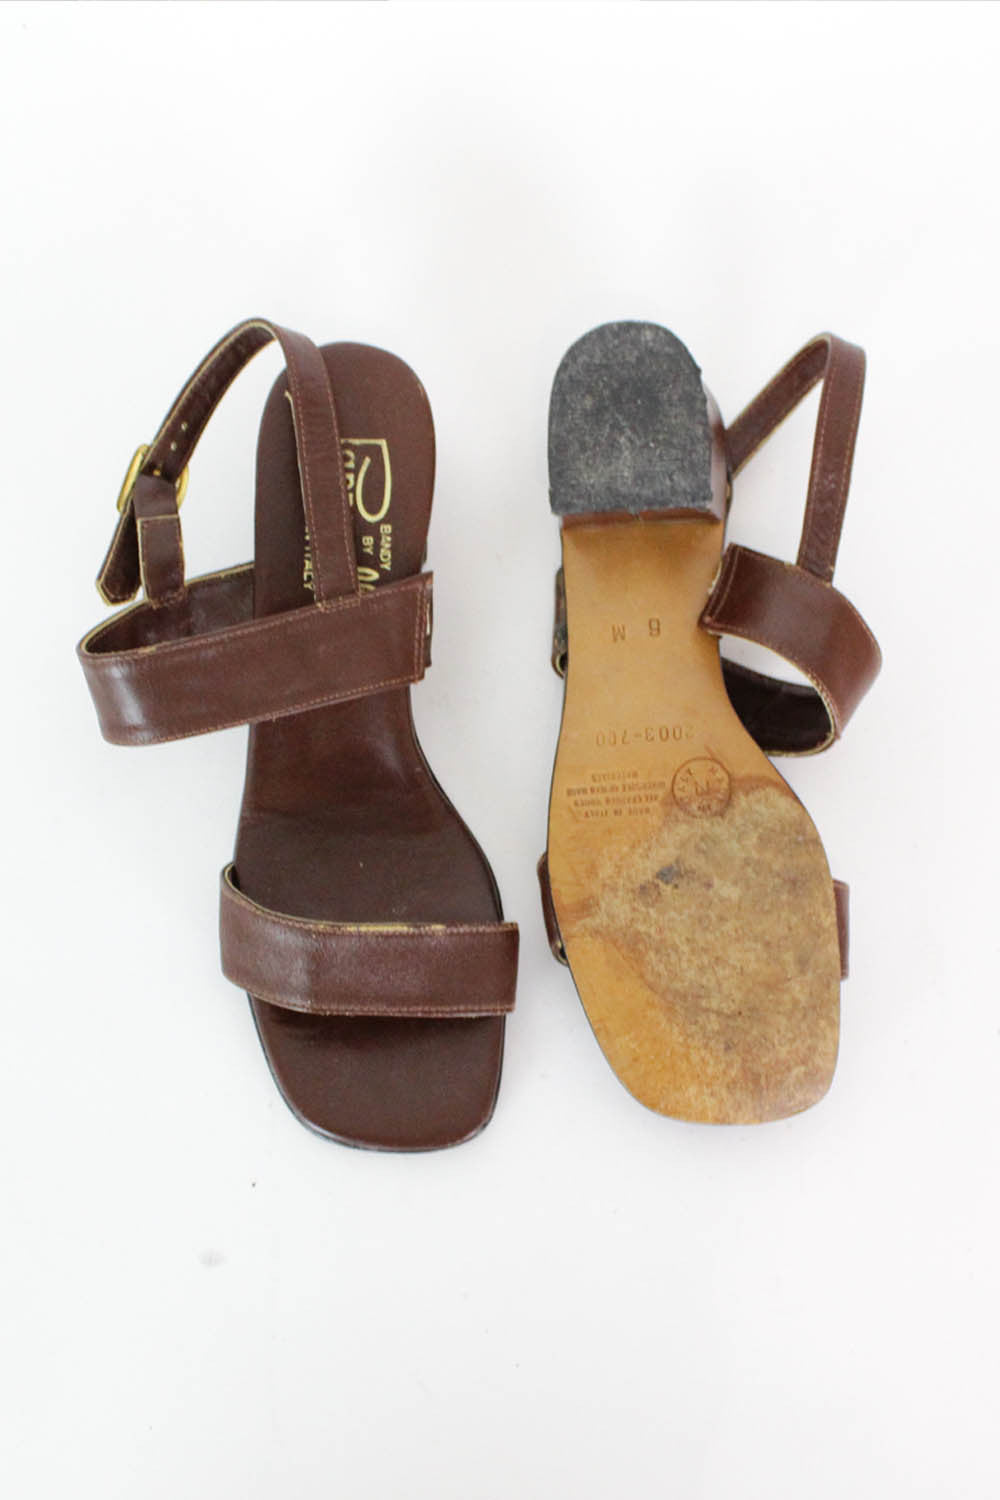 Bandy Pappagallo Sandals 6